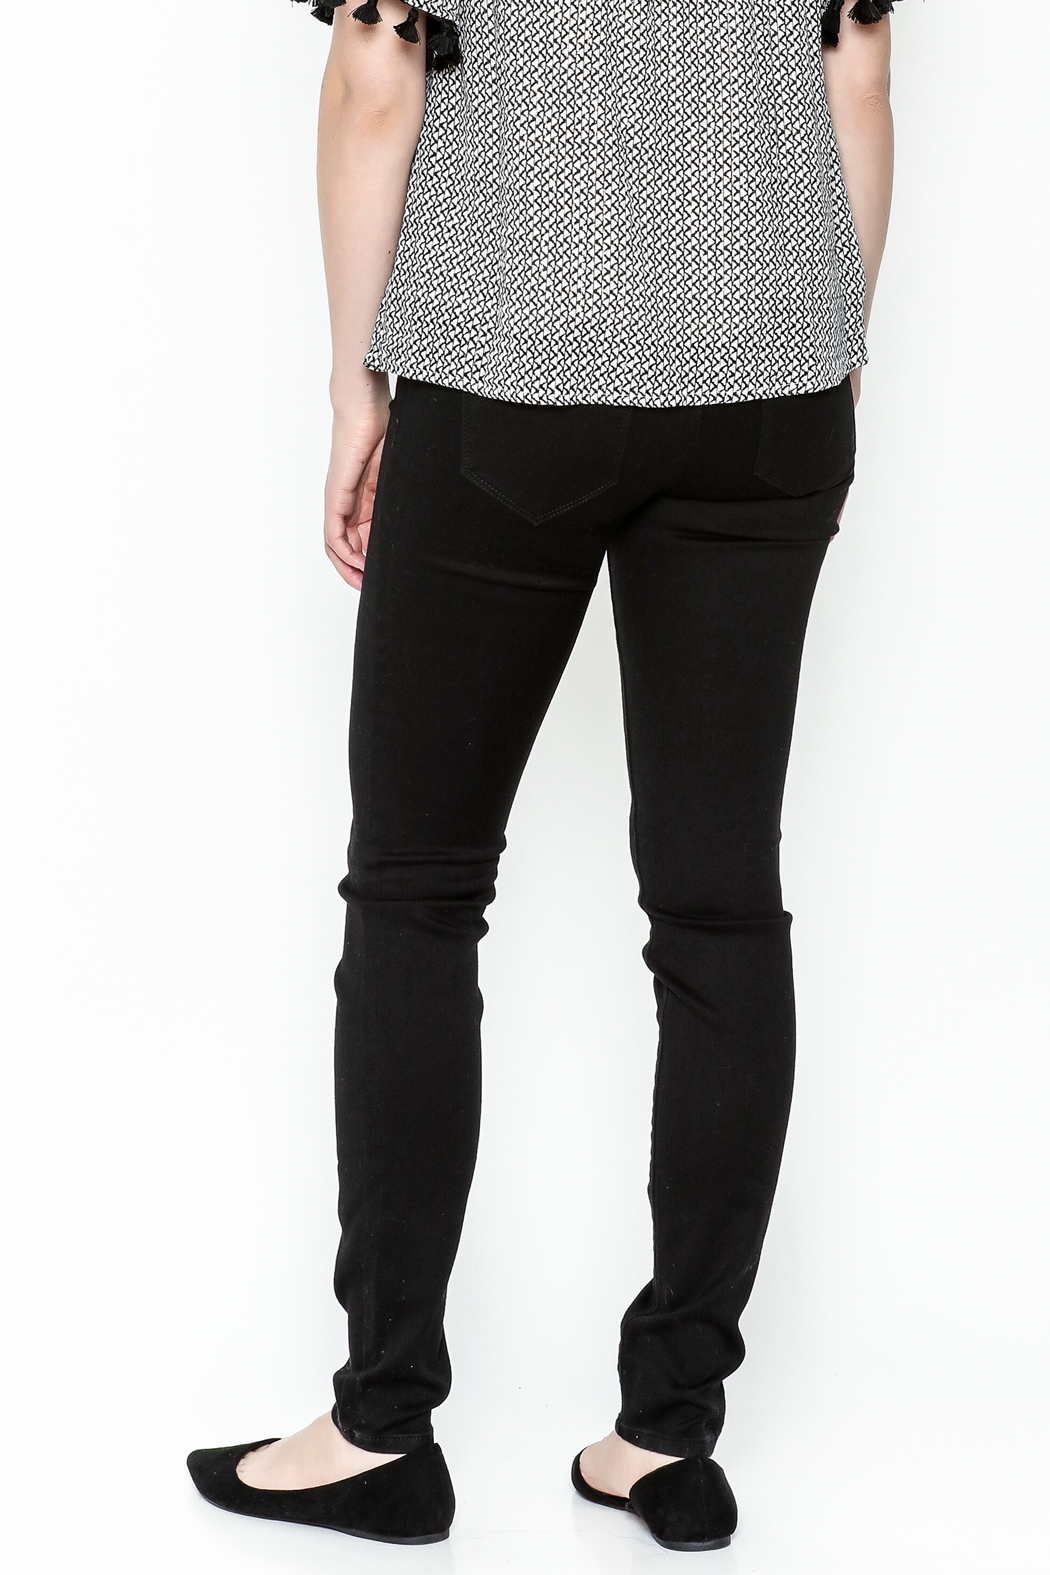 Polly & Esther Black Jeans - Back Cropped Image